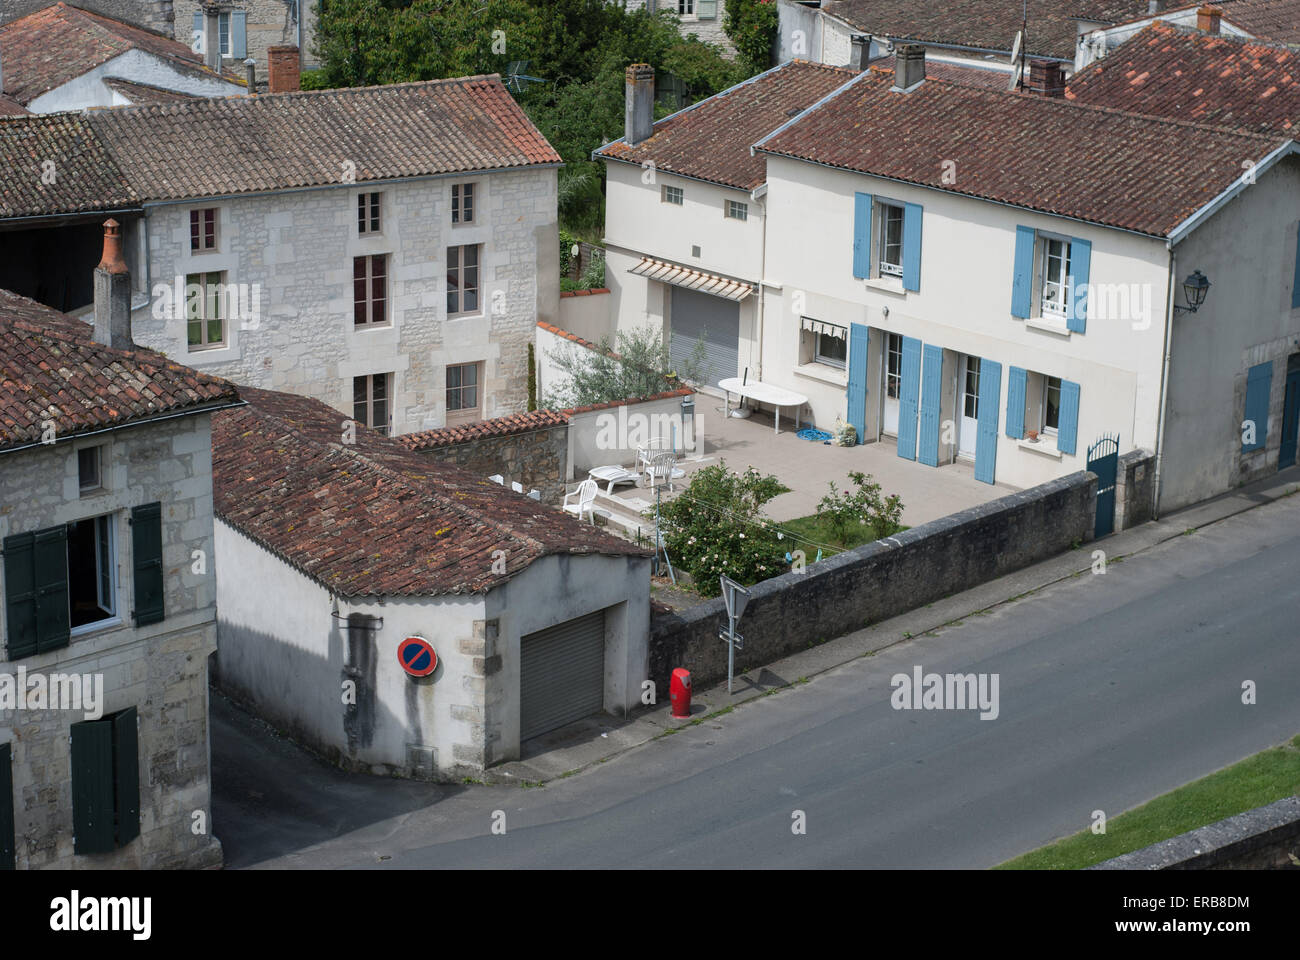 Aerial View Of Houses In Taillebourg, Charente Maritime, France   Stock  Image